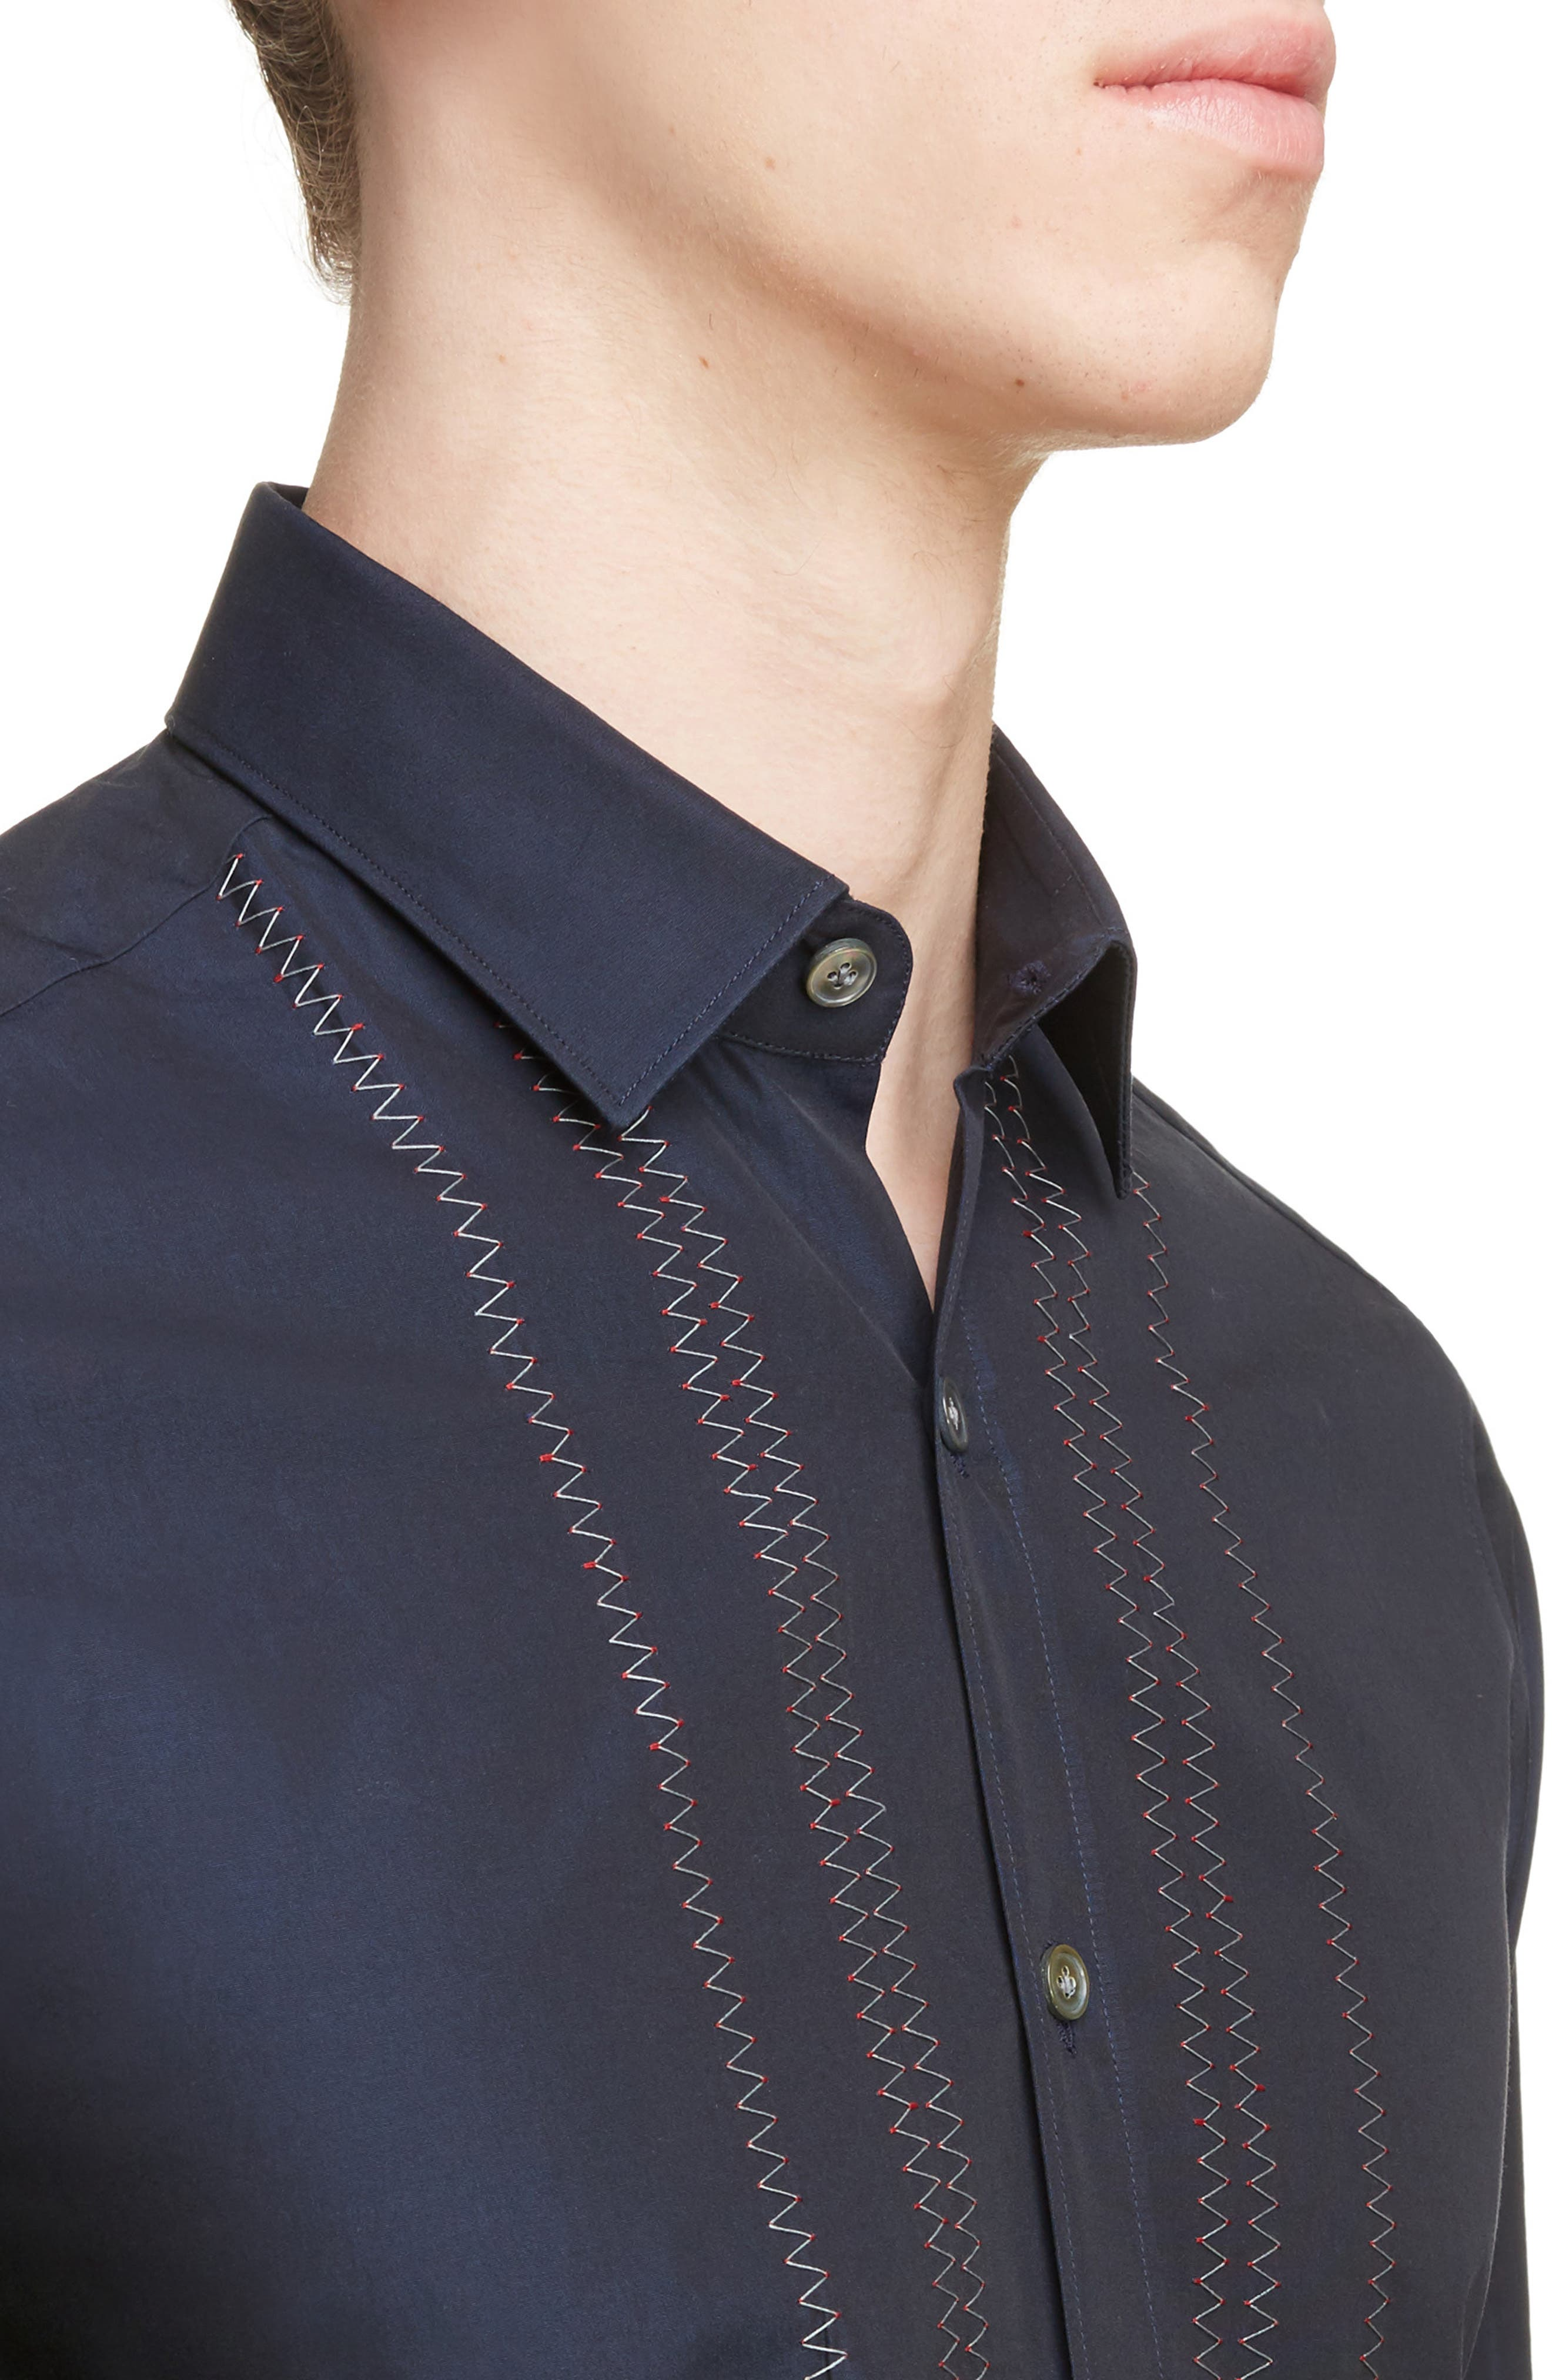 Zigzag Embroidered Cotton & Silk Sport Shirt,                             Alternate thumbnail 5, color,                             410